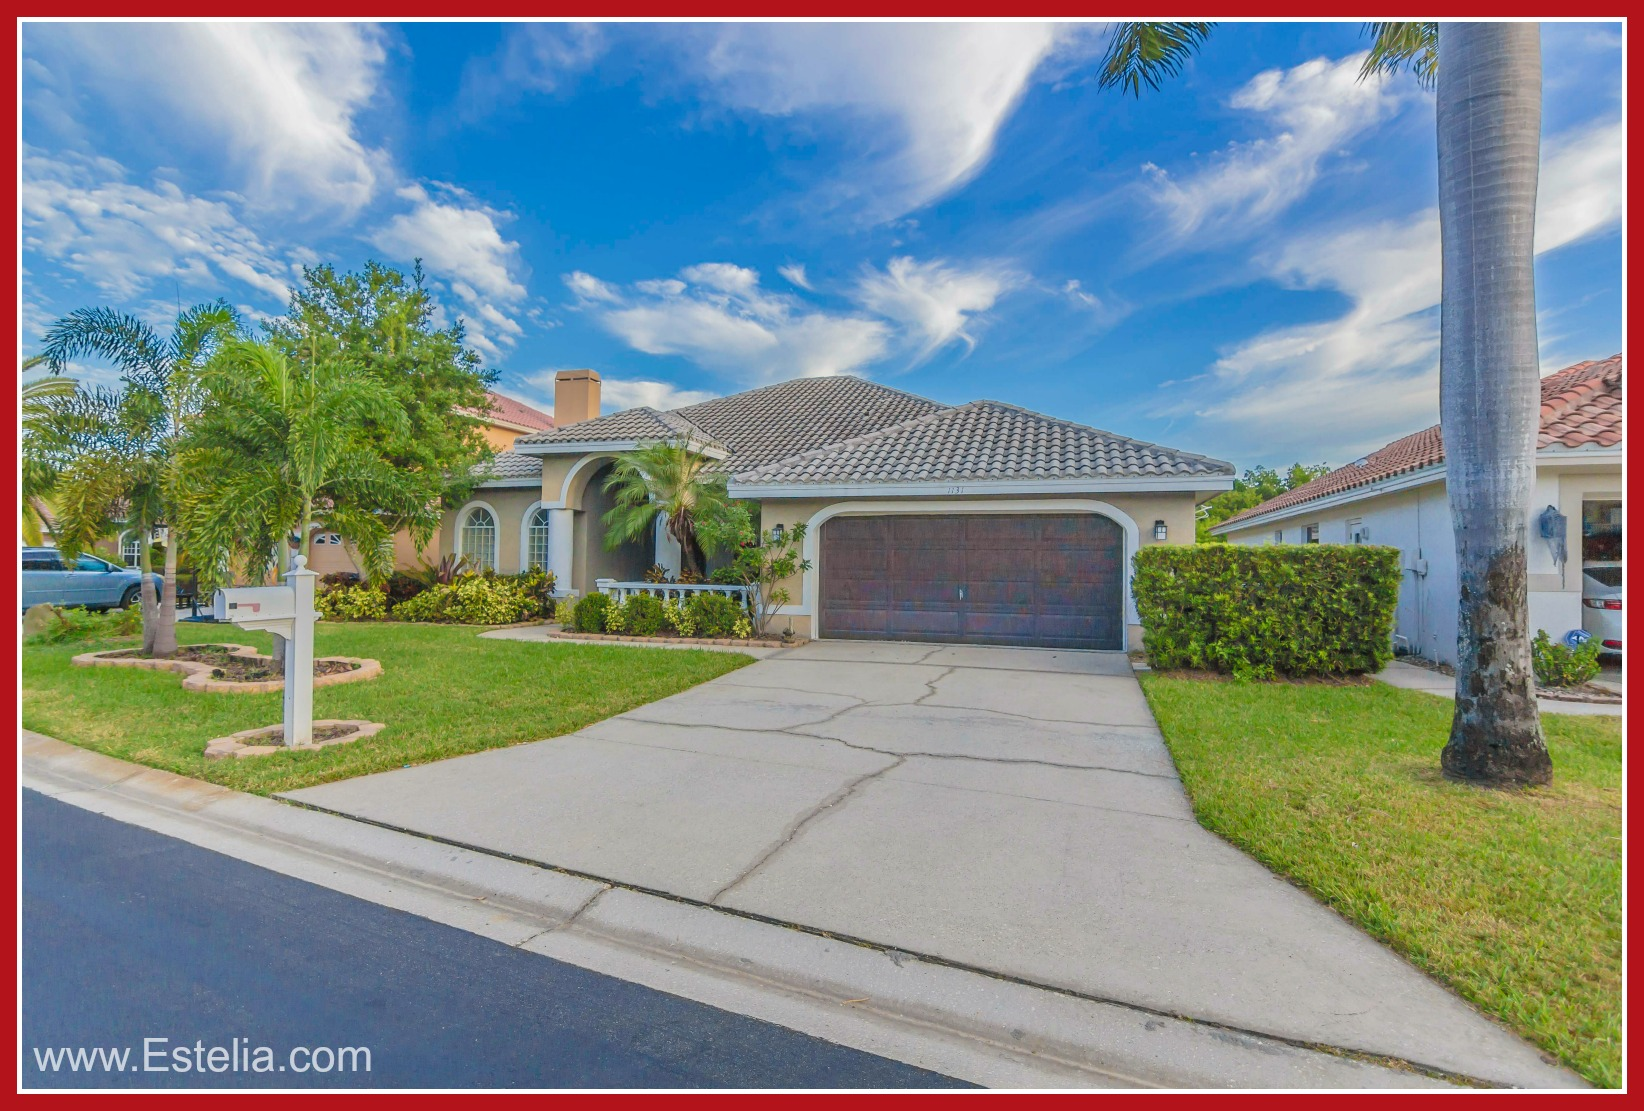 Waterfront Homes for Sale in St. Petersburg FL